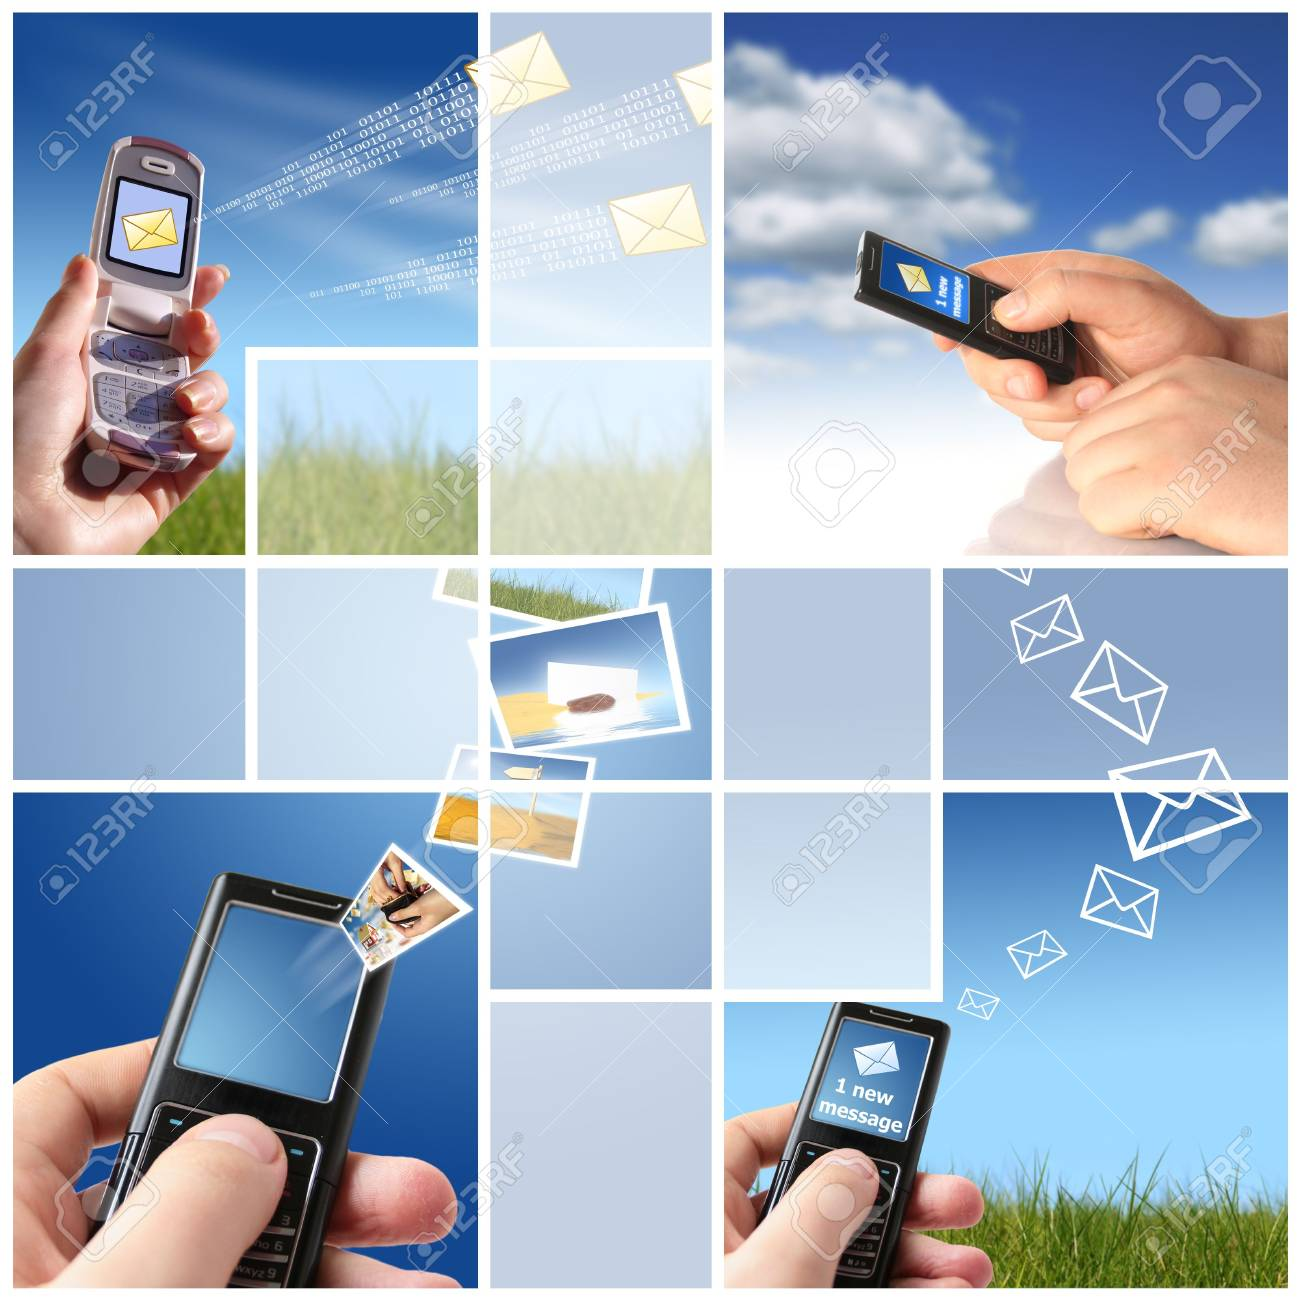 Collage. Communication concept. Mobile phone in hand over sky. Stock Photo - 4995994